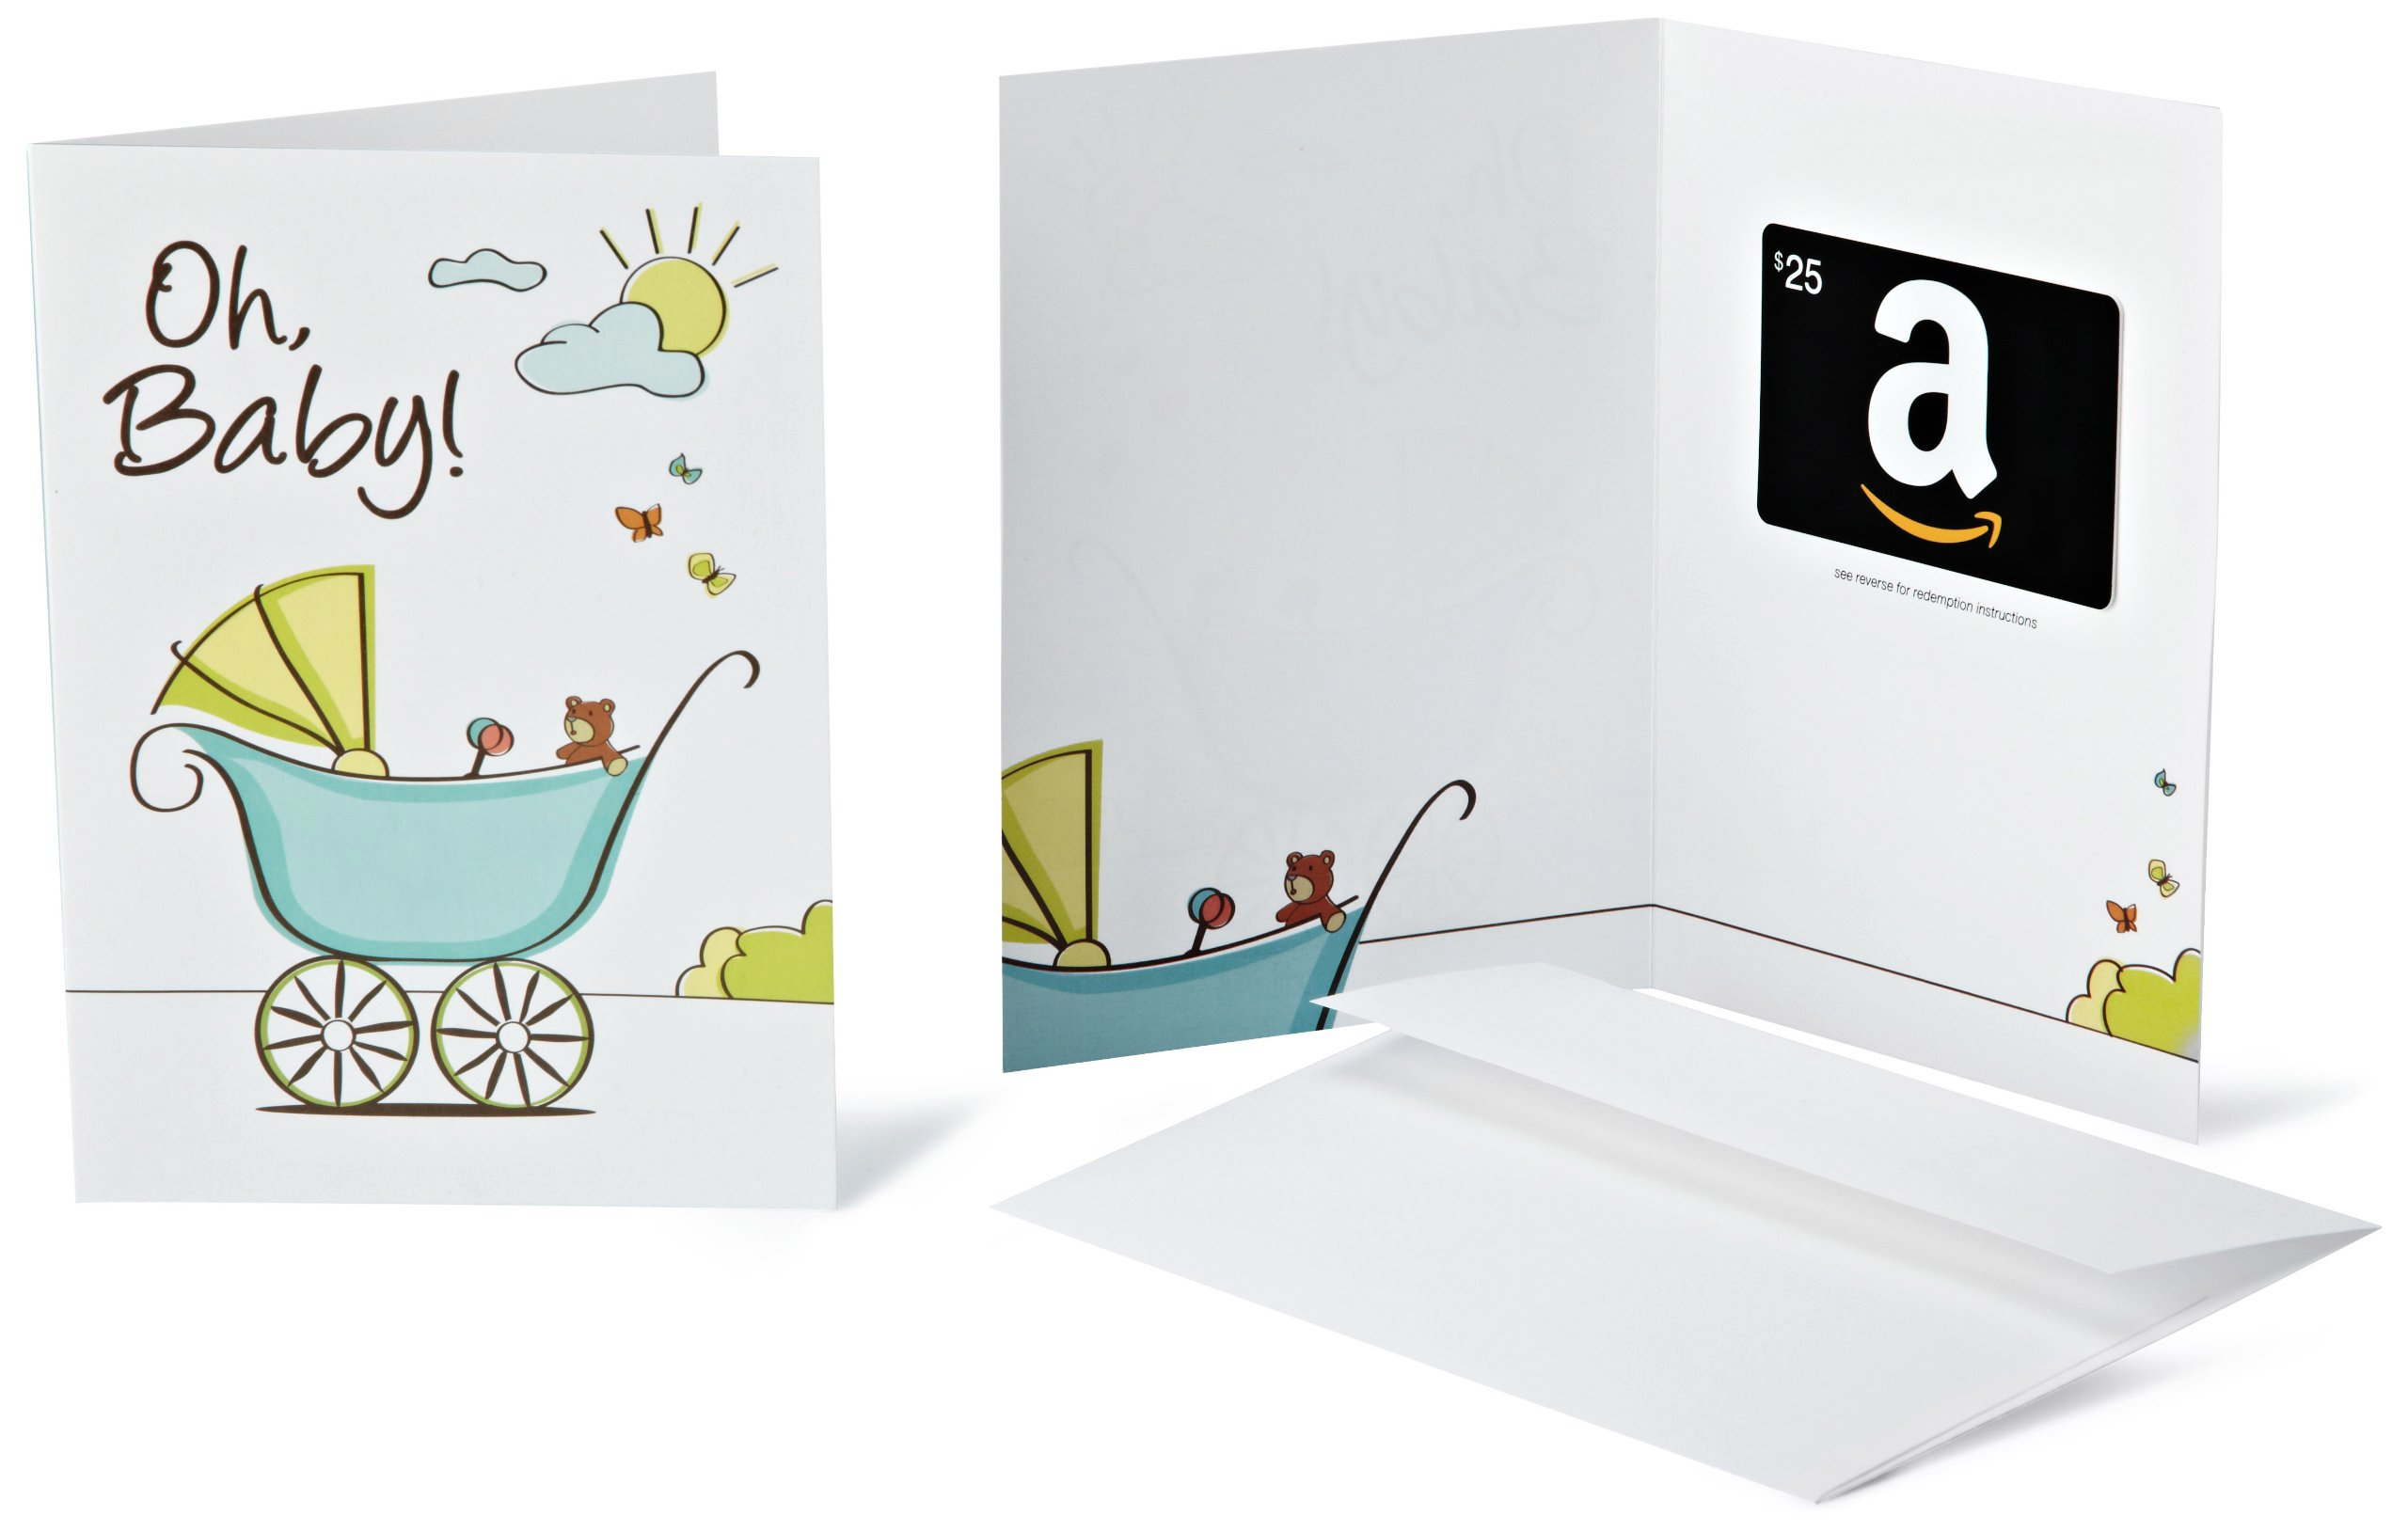 Buy $50 Amazon Gift Card, get $10 FREE!